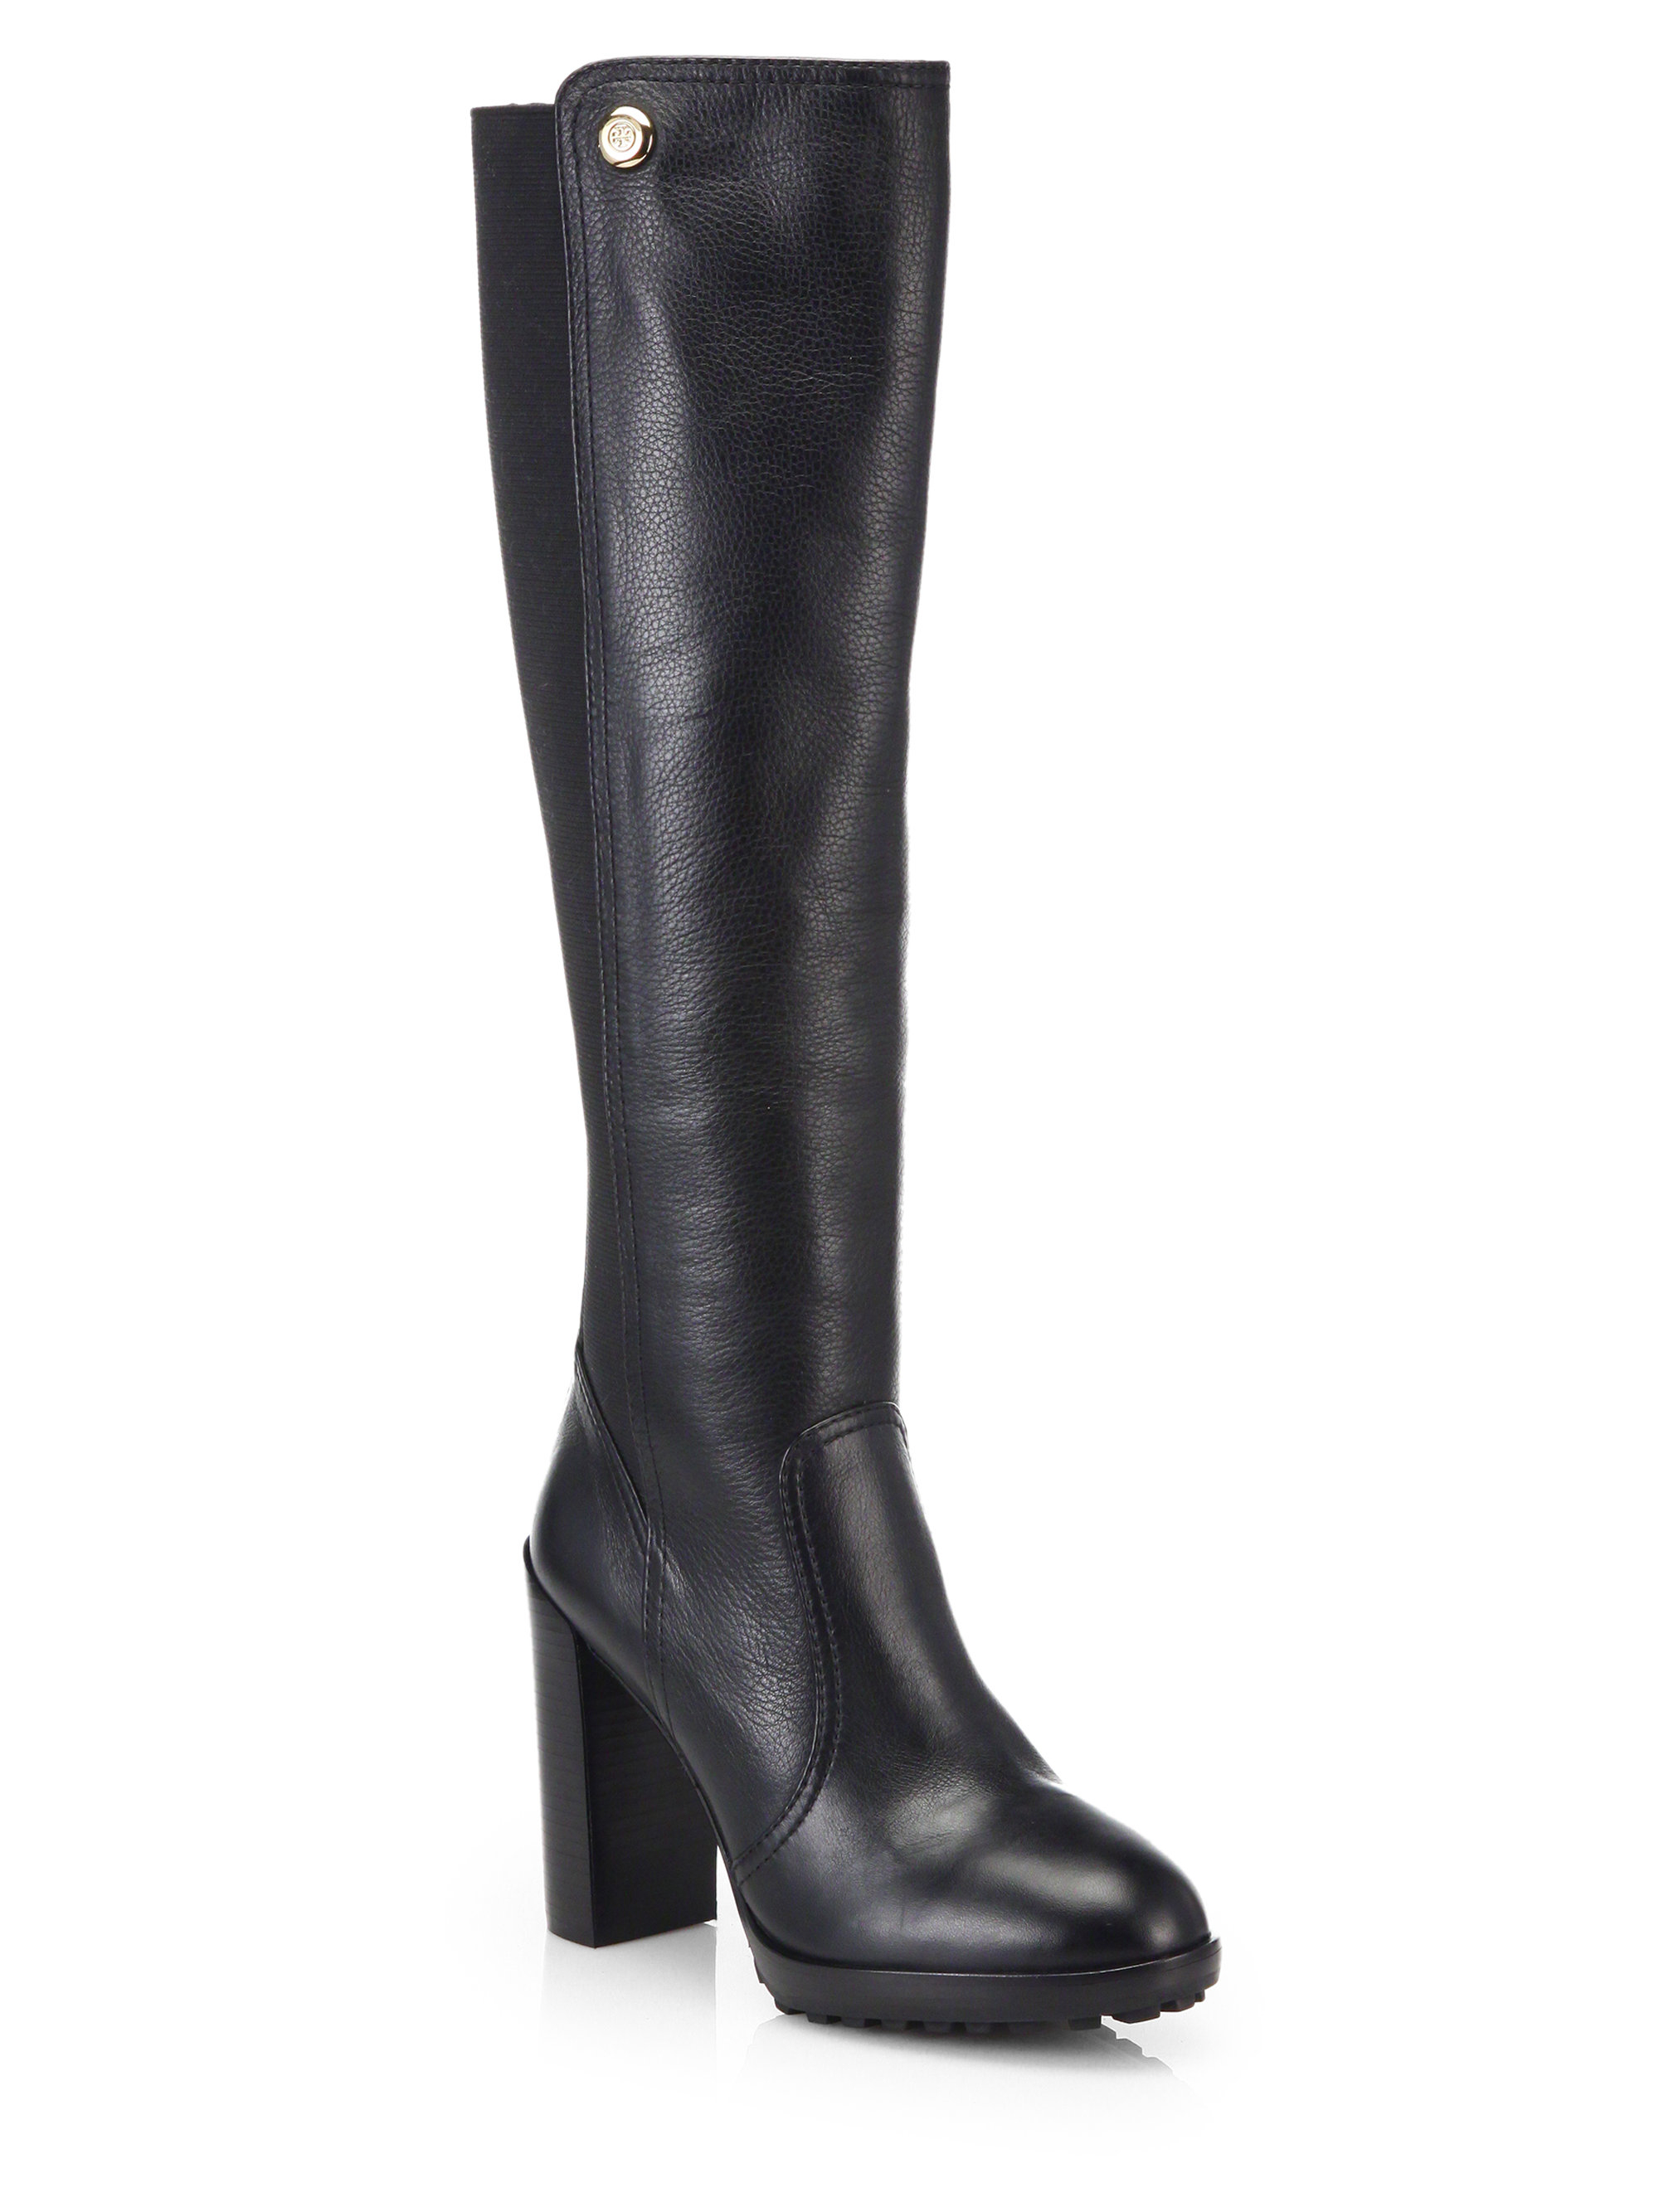 d22d12717a97 Lyst - Tory Burch Sullivan Knee-High Leather Boots in Black